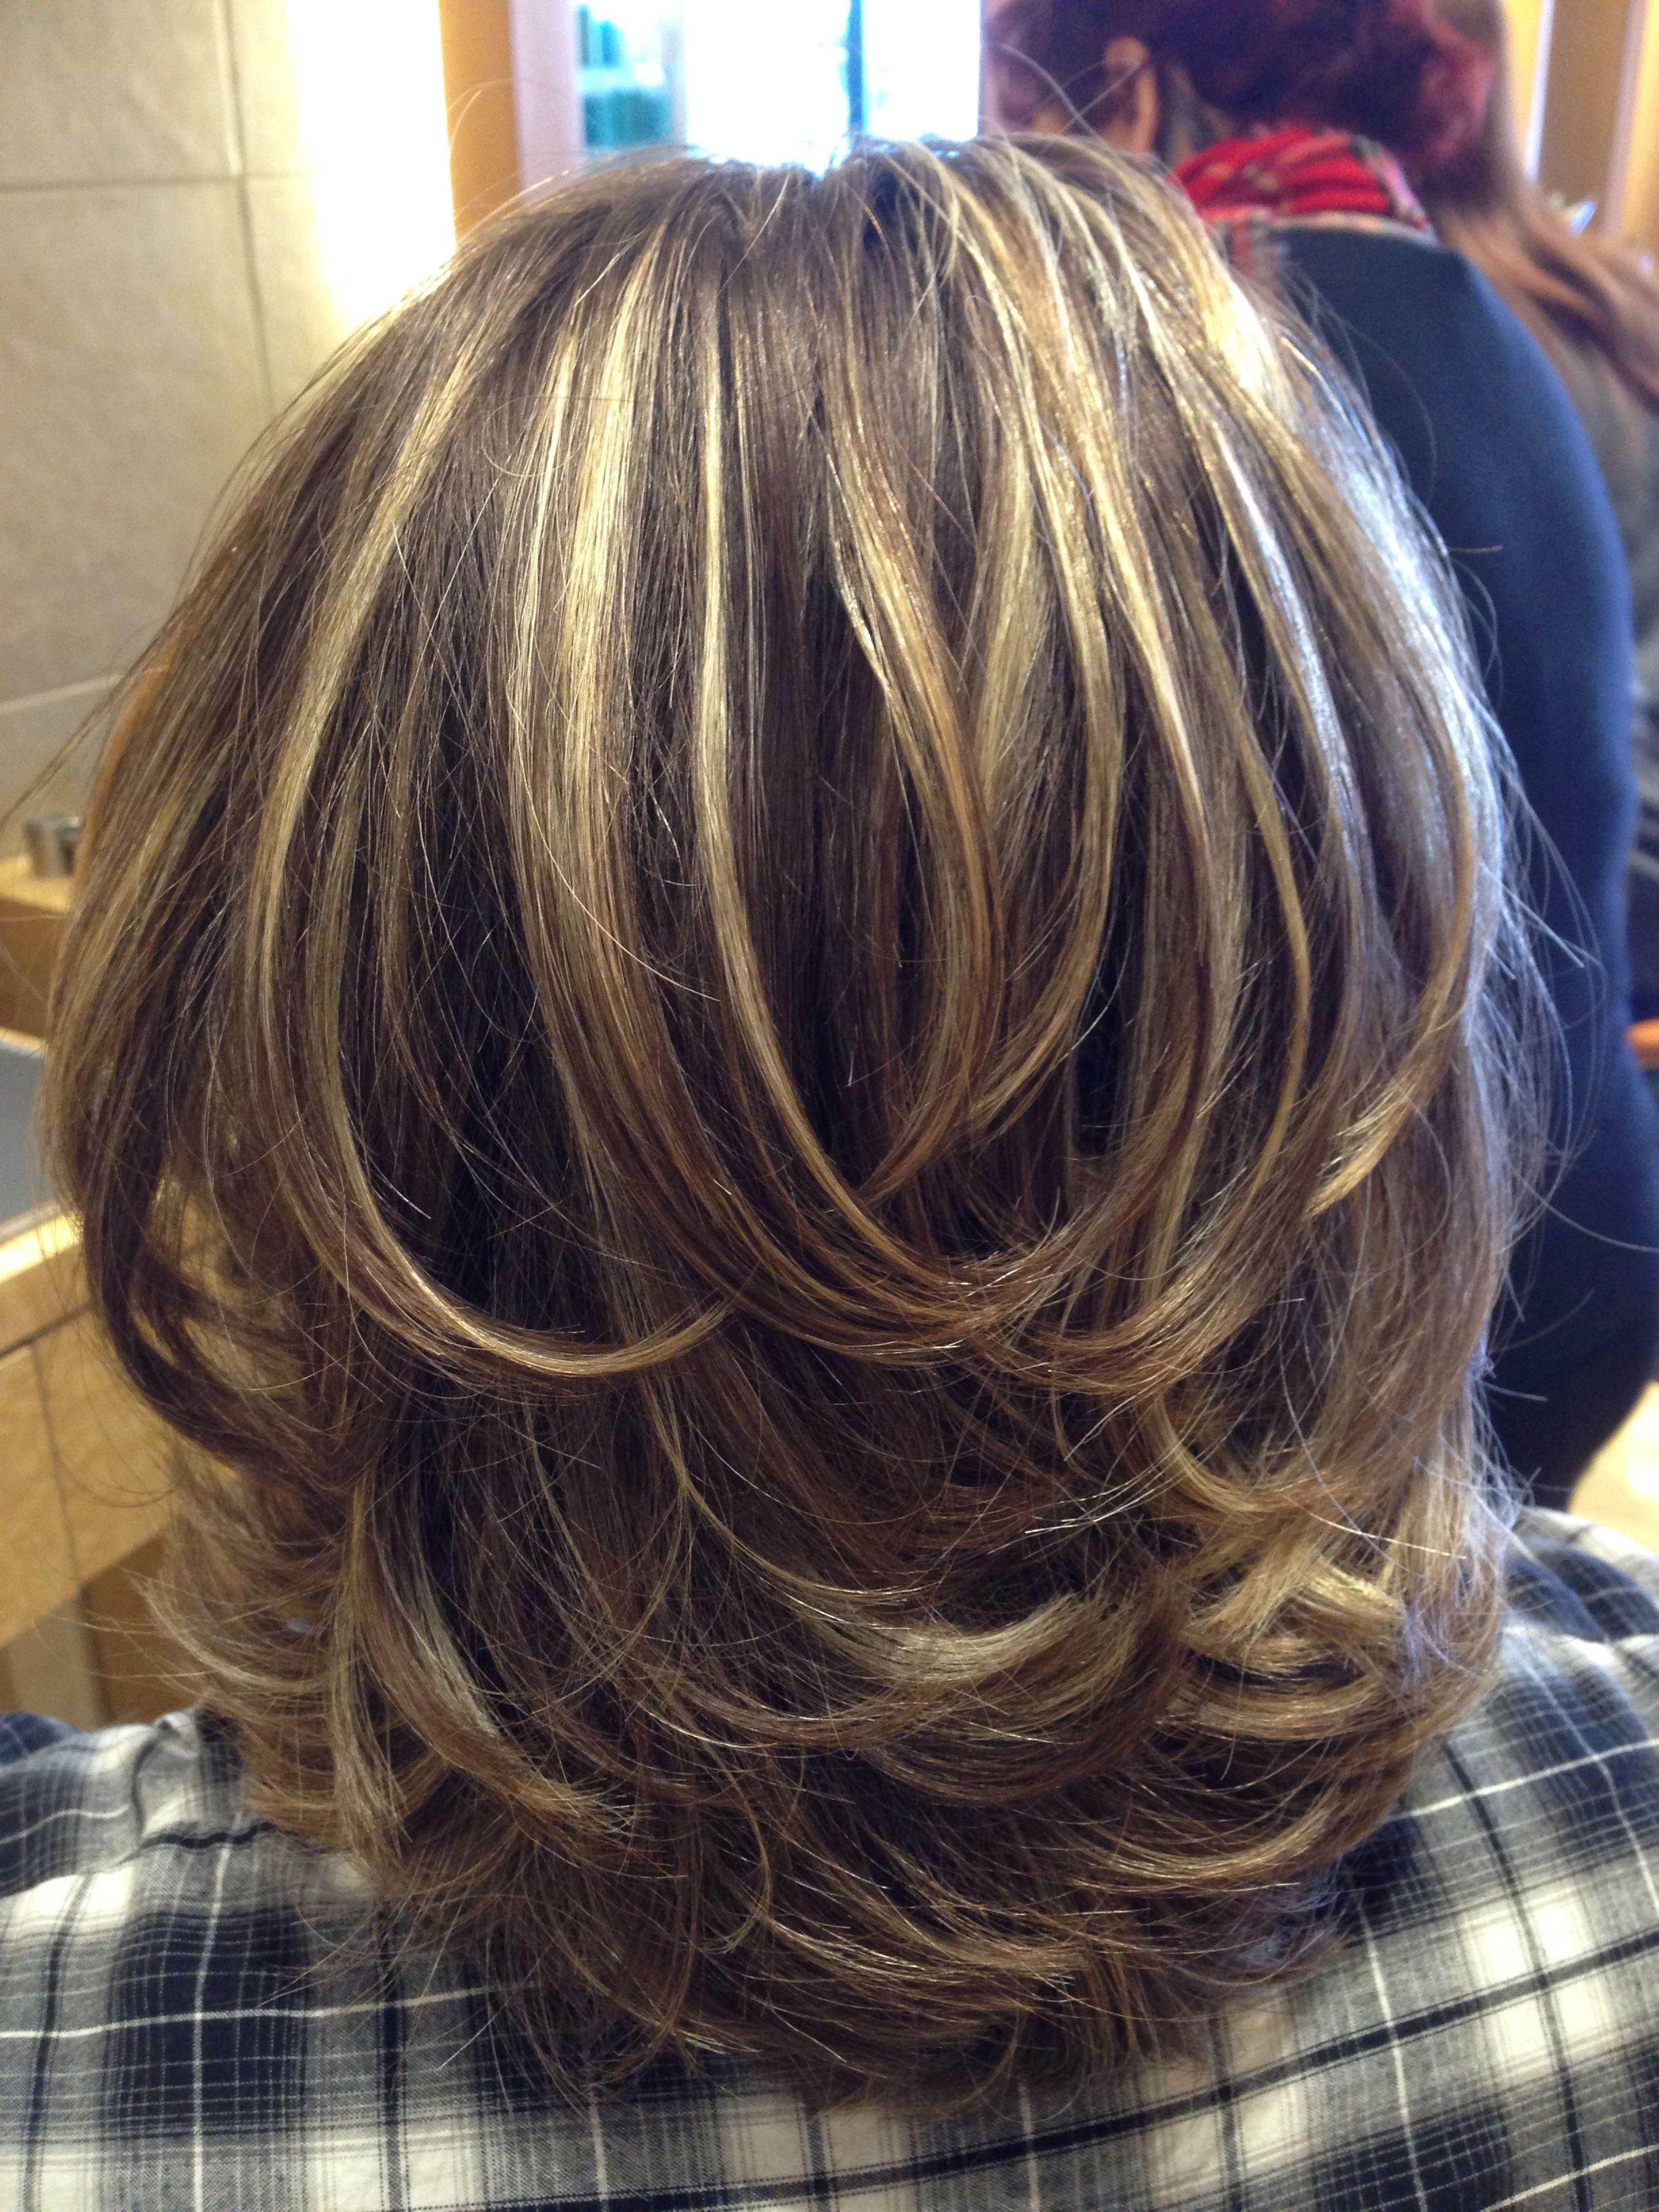 Preferred Medium Hairstyles With Sliced Layers With Layered Hair Cut (View 3 of 20)